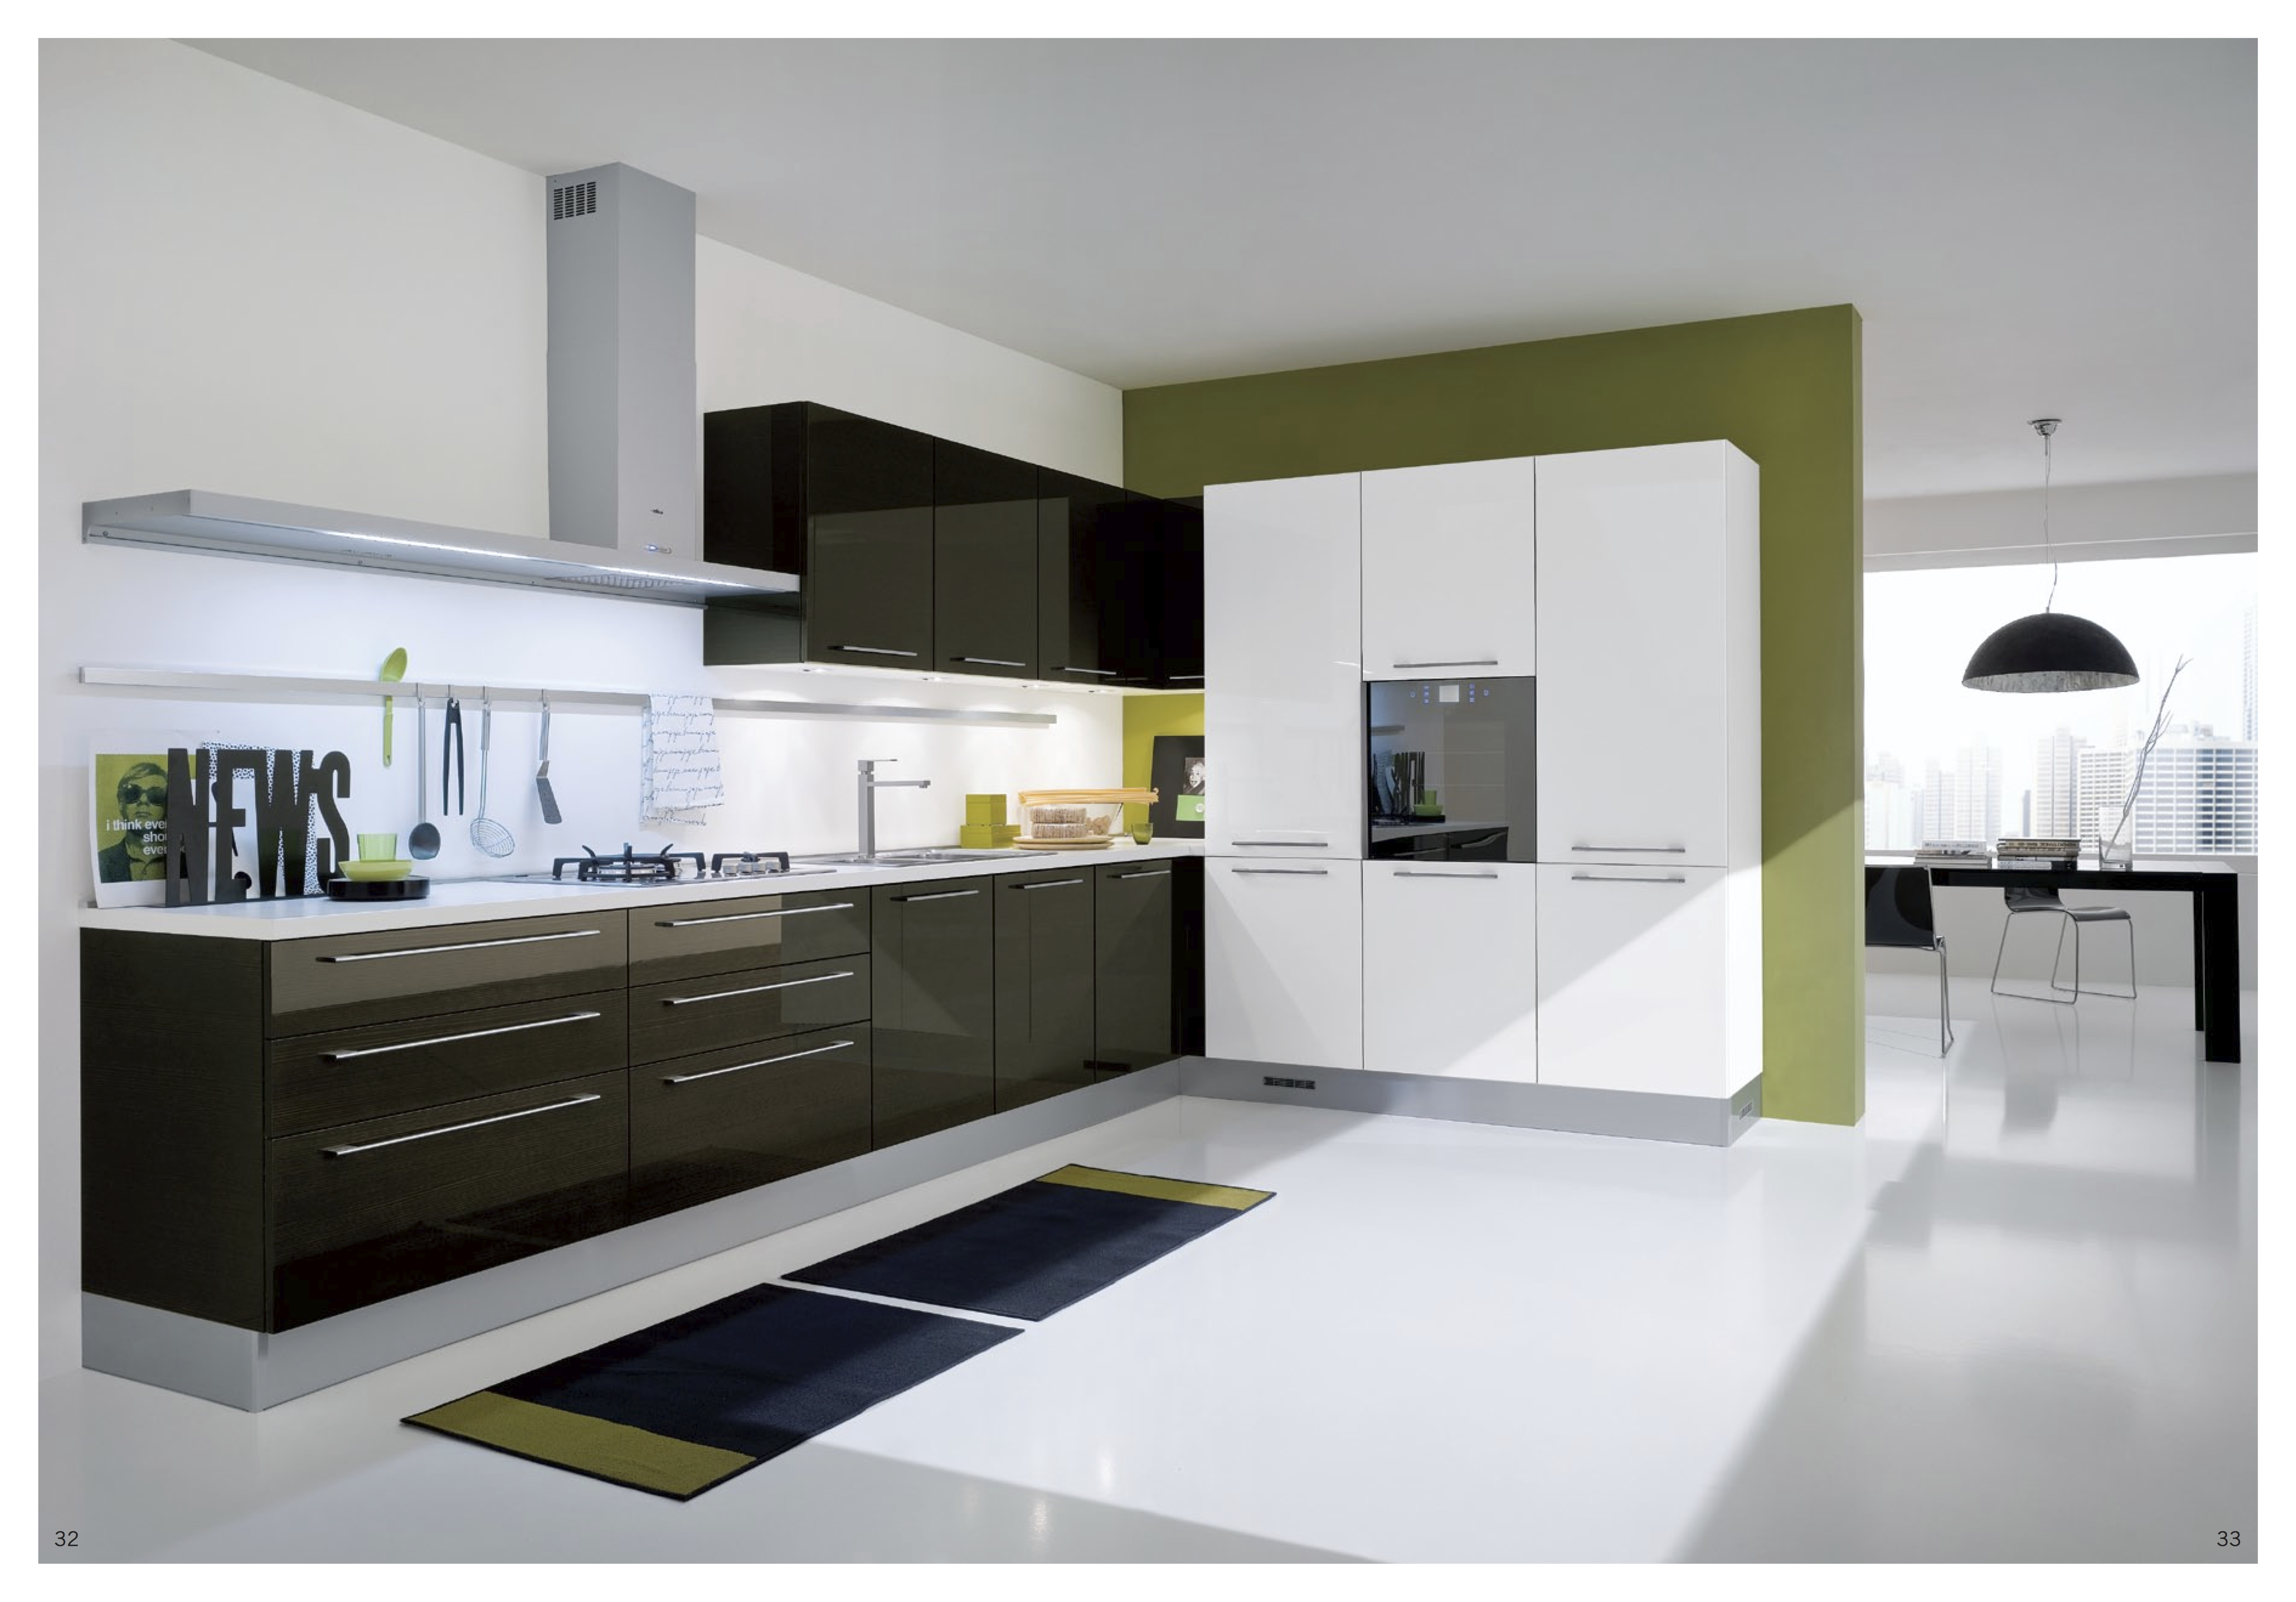 it is best to have overhanging lights or modern lamps for a modern modern kitchen - Modern Kitchen Design Ideas